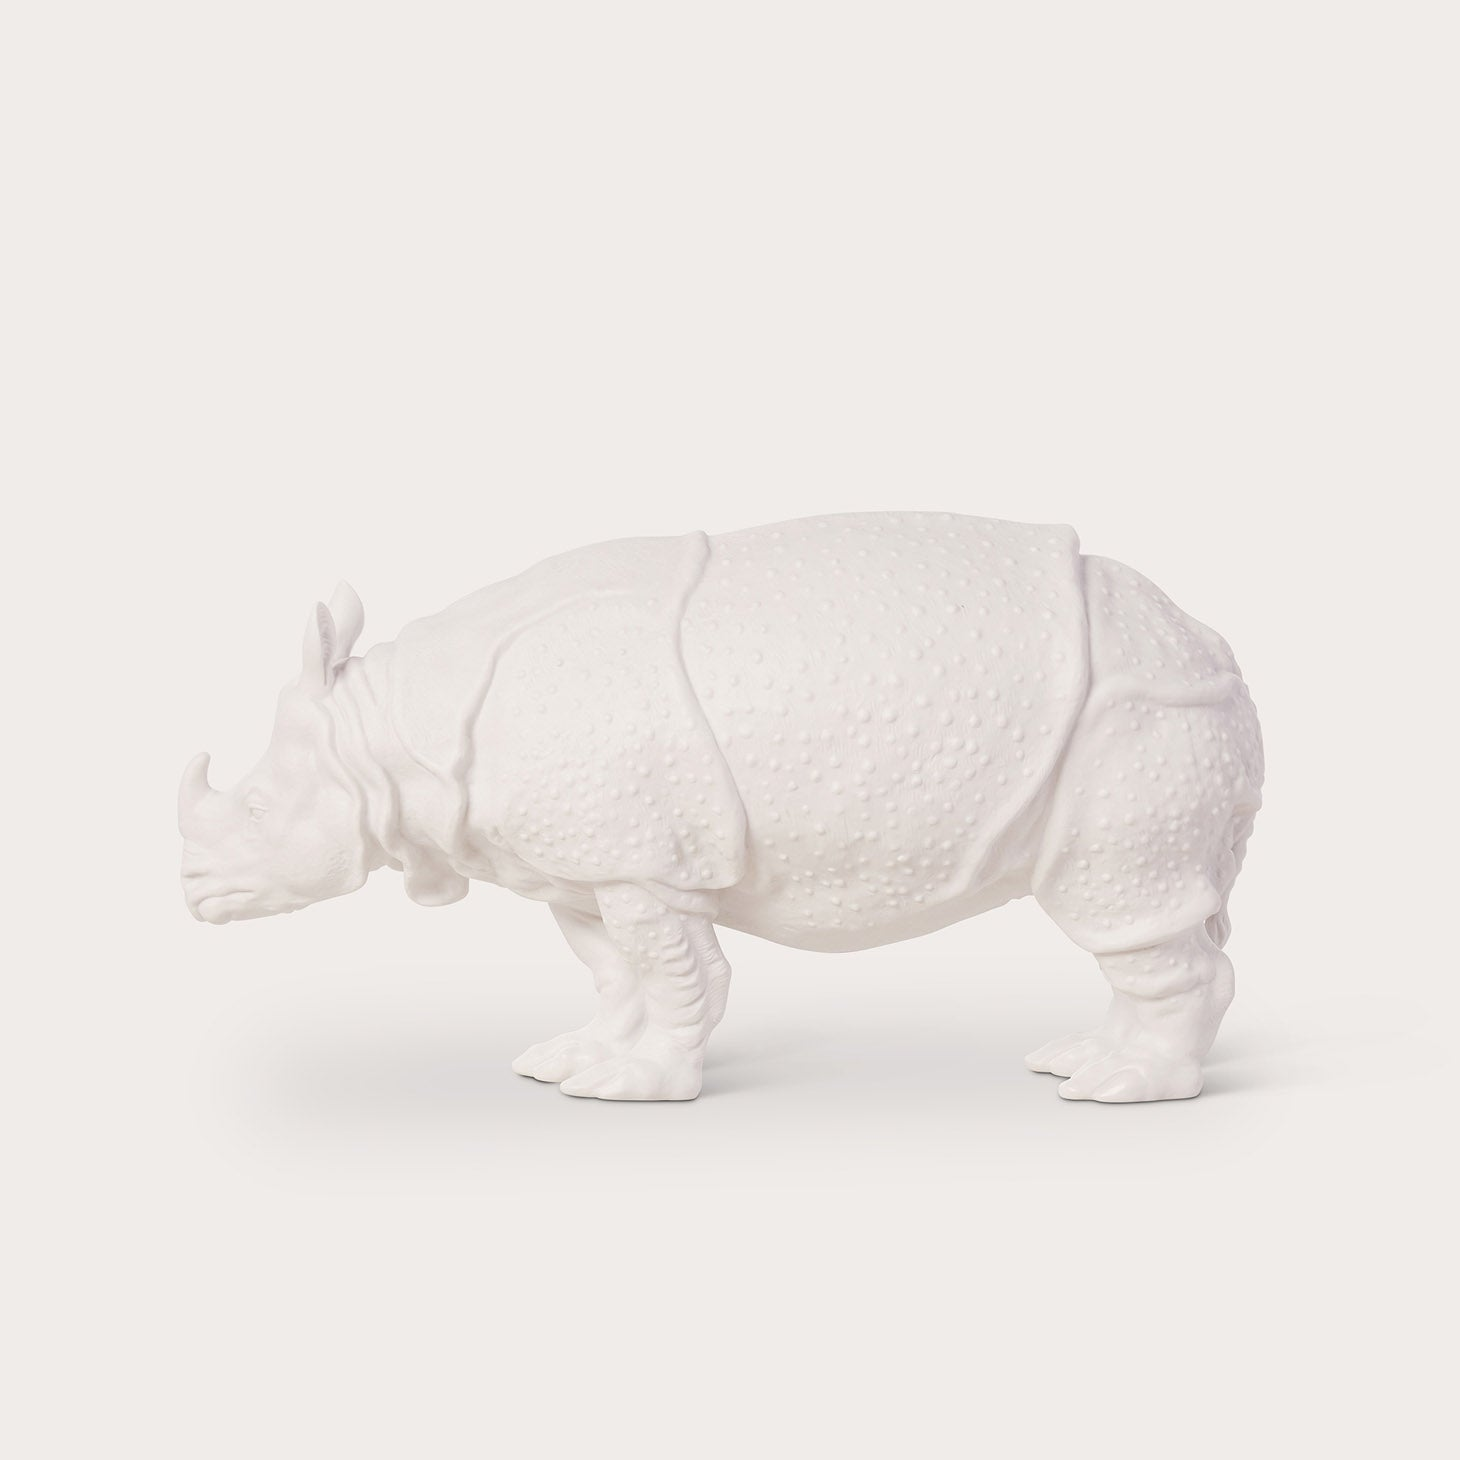 Animals-Rhinoceros Clara Accessories Nymphenburg Designer Furniture Sku: 542-100-10075